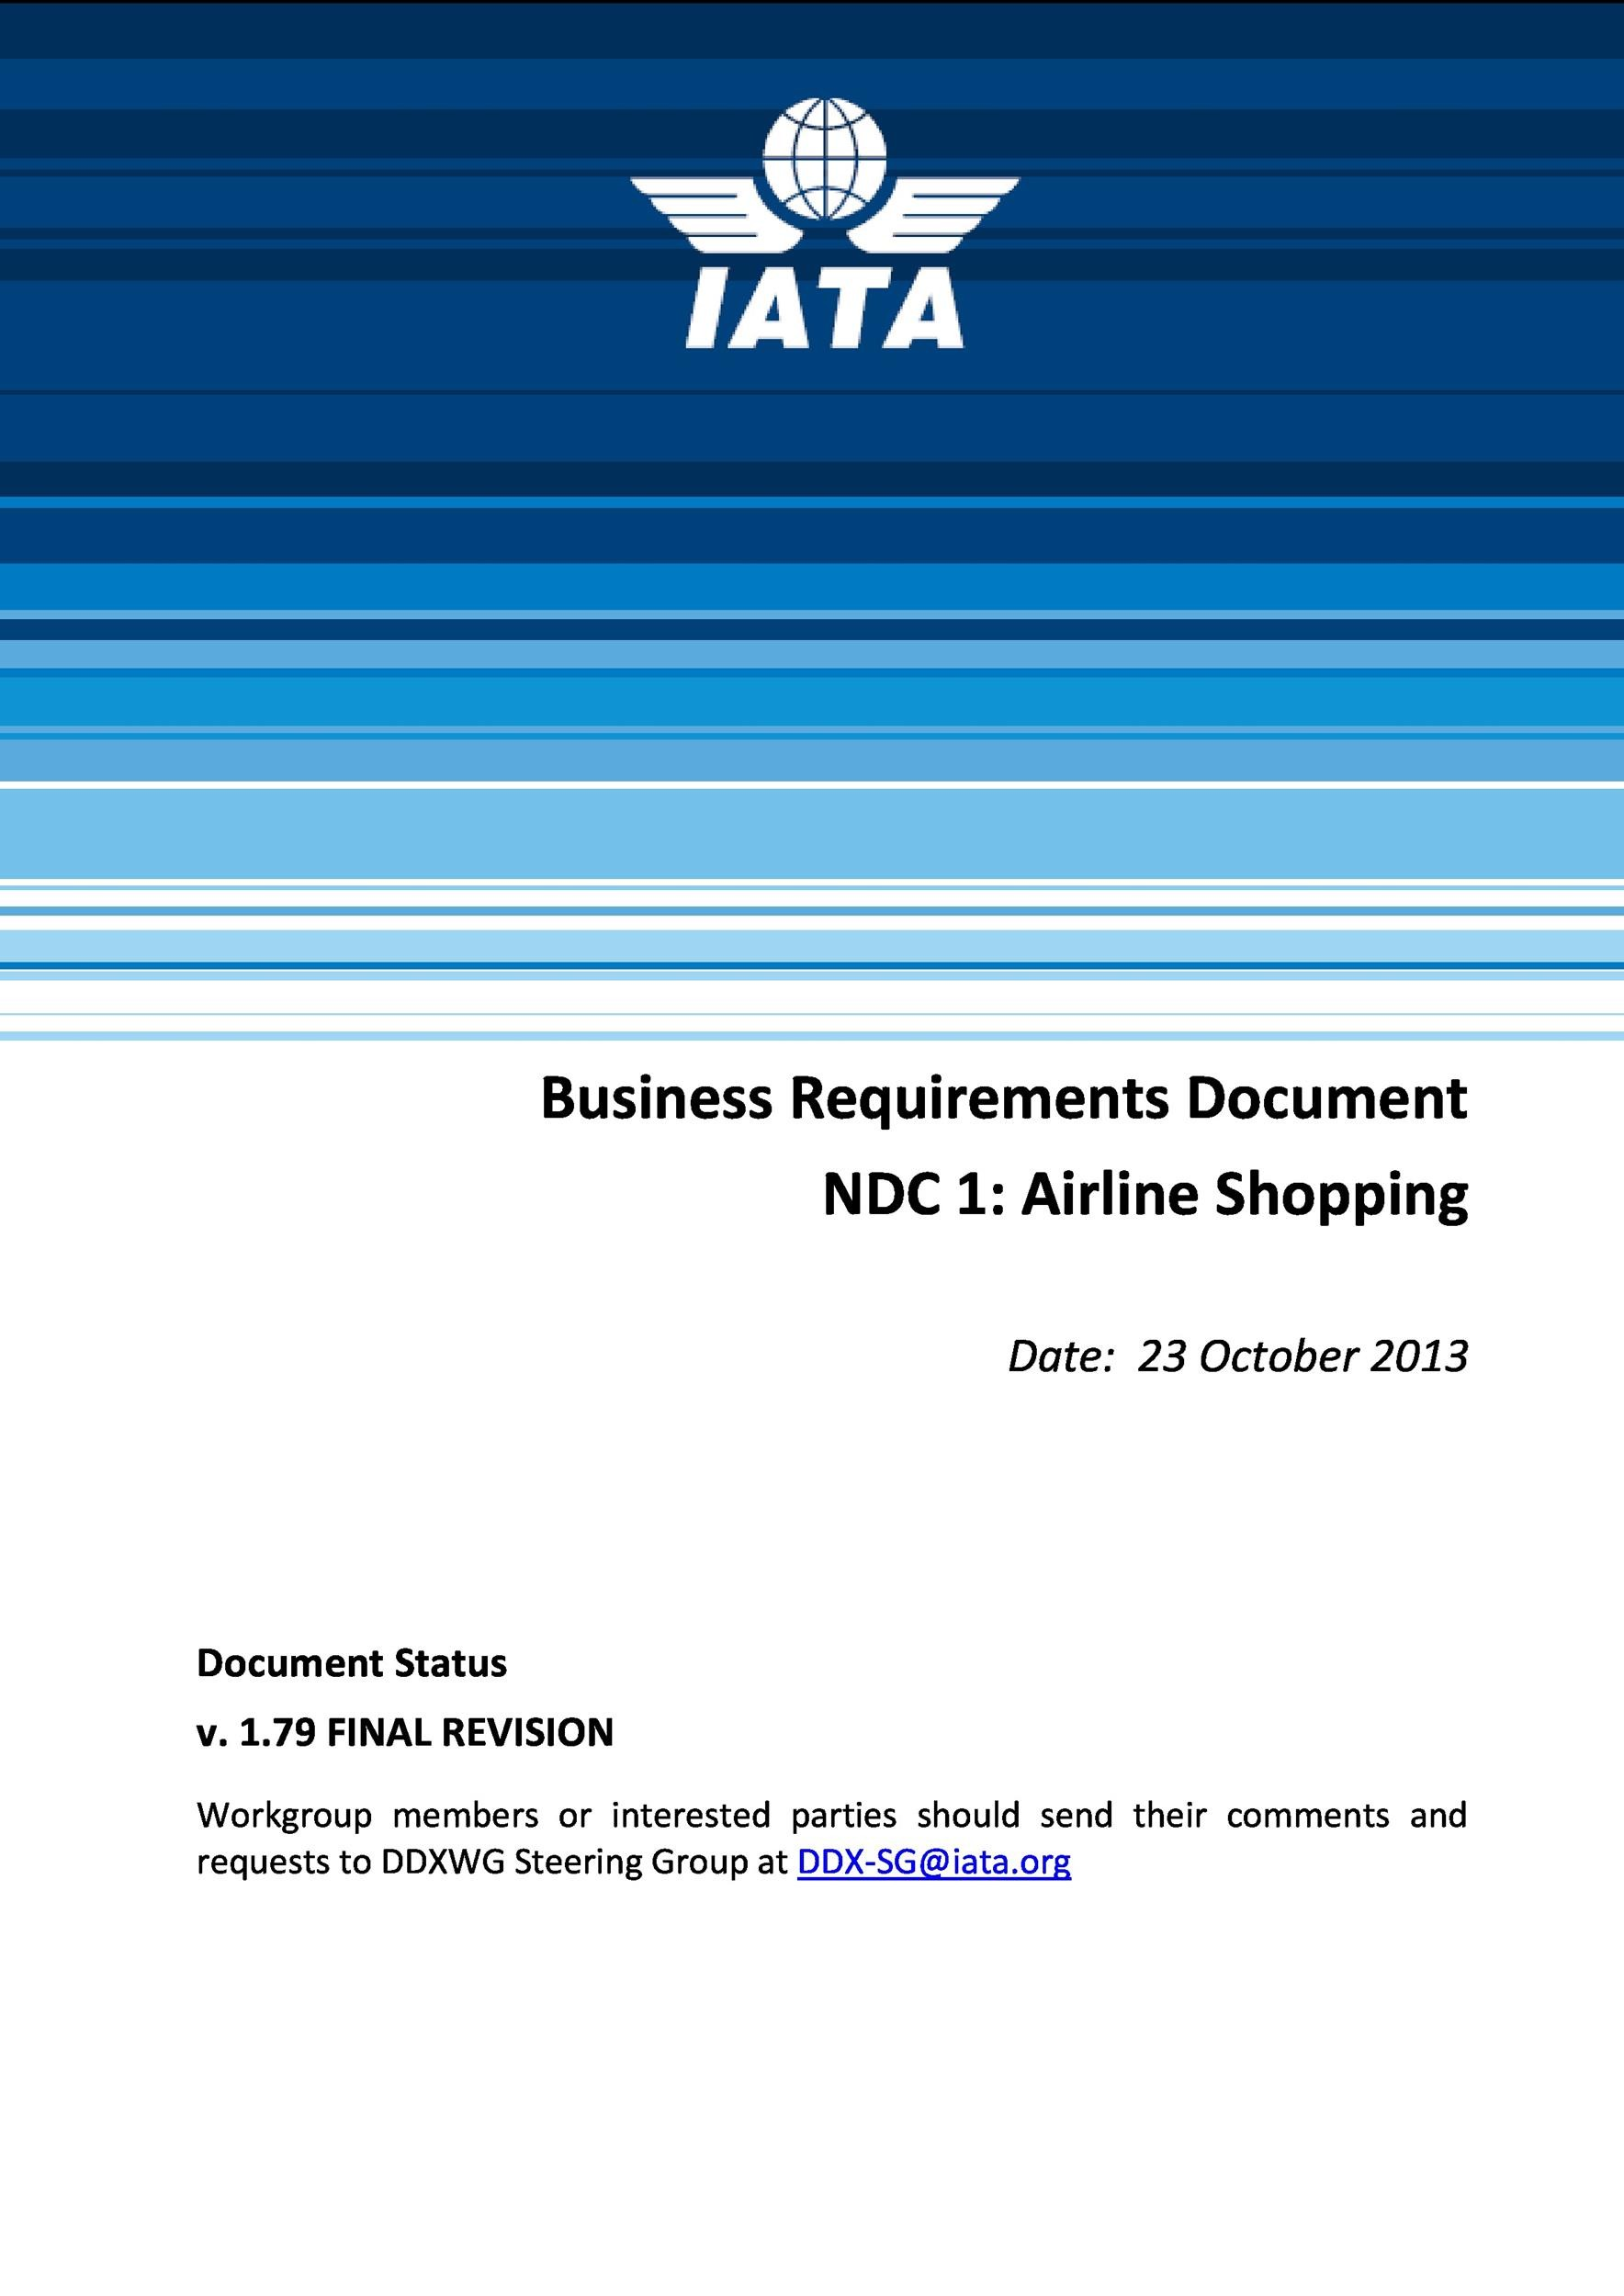 40 simple business requirements document templates template lab free business requirements document template 40 accmission Gallery